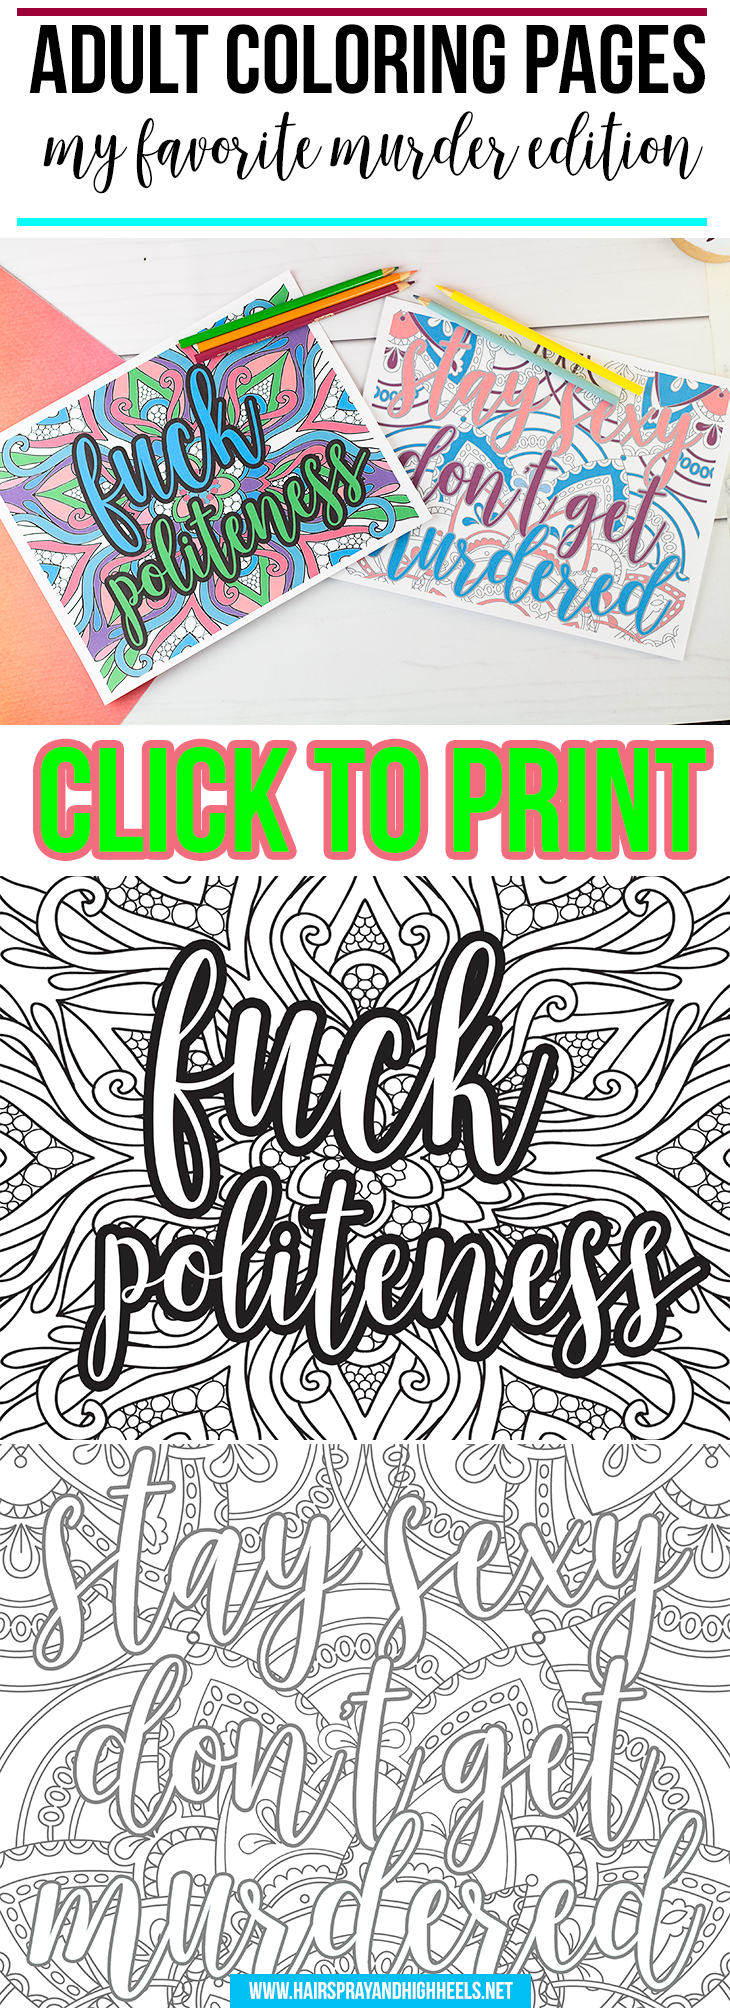 Adult Coloring Pages My Favorite Murder Edition